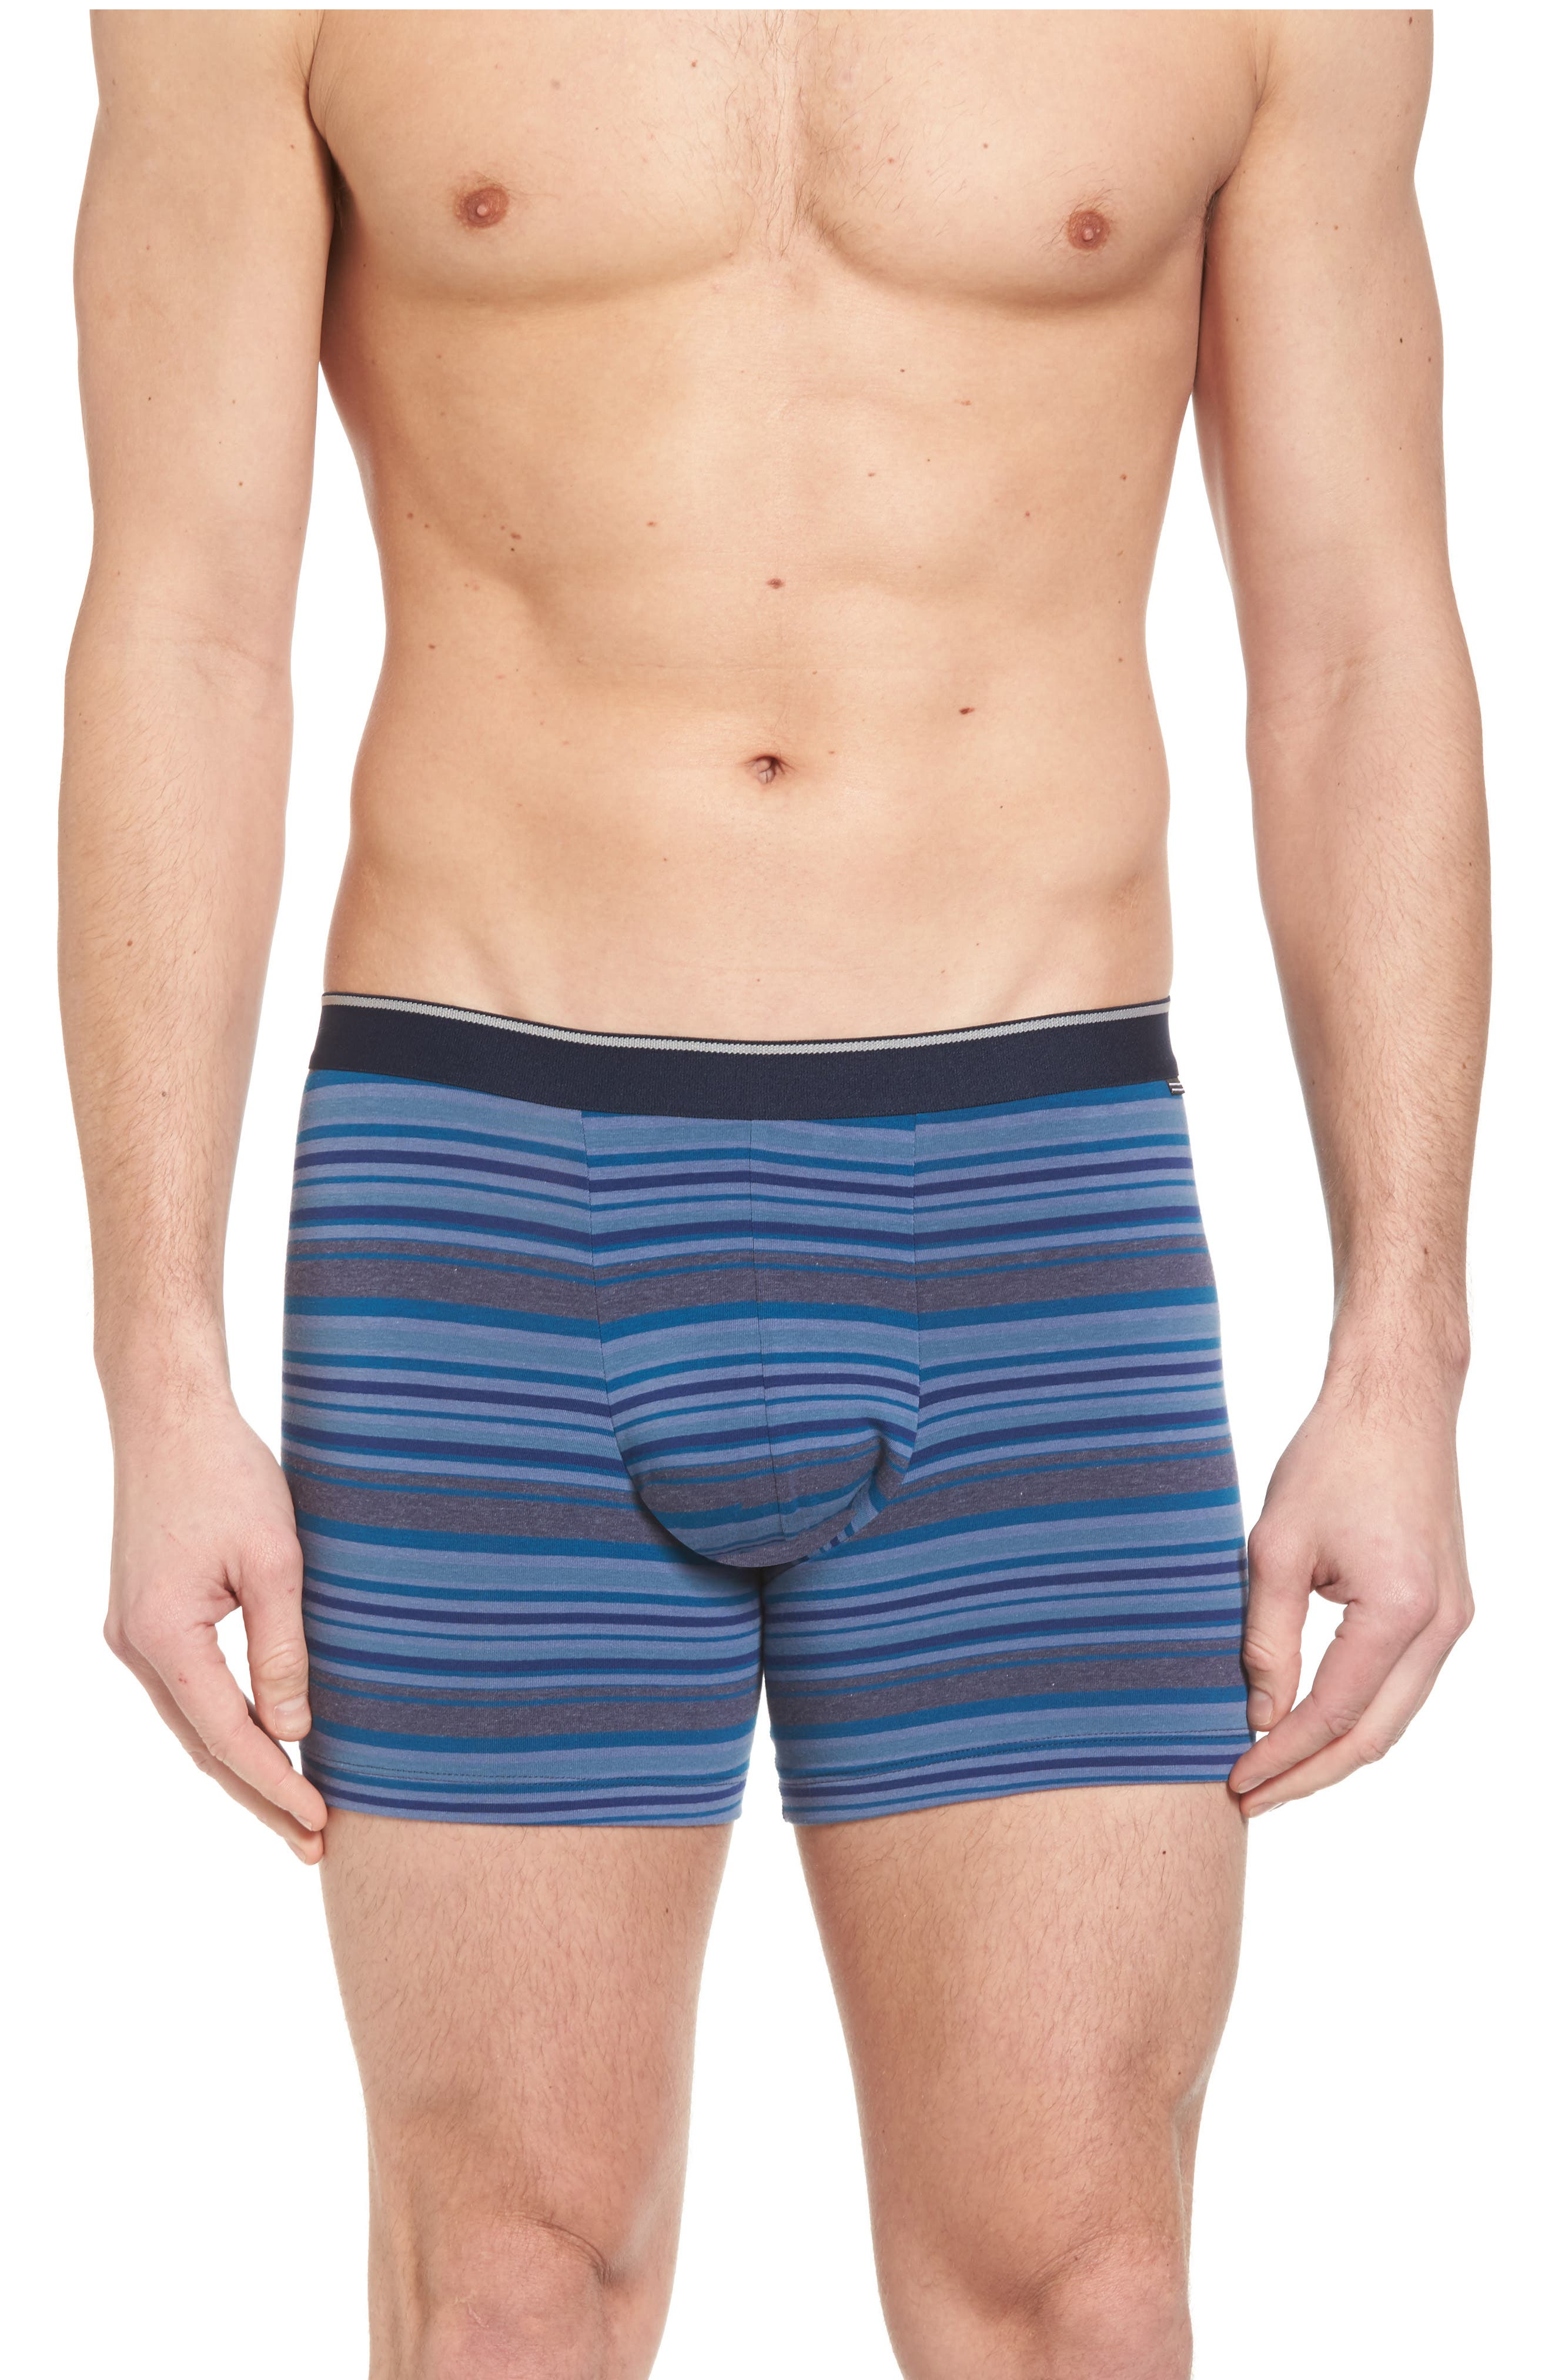 Pouch Briefs,                             Main thumbnail 1, color,                             Blue Tonal Multi Stripe